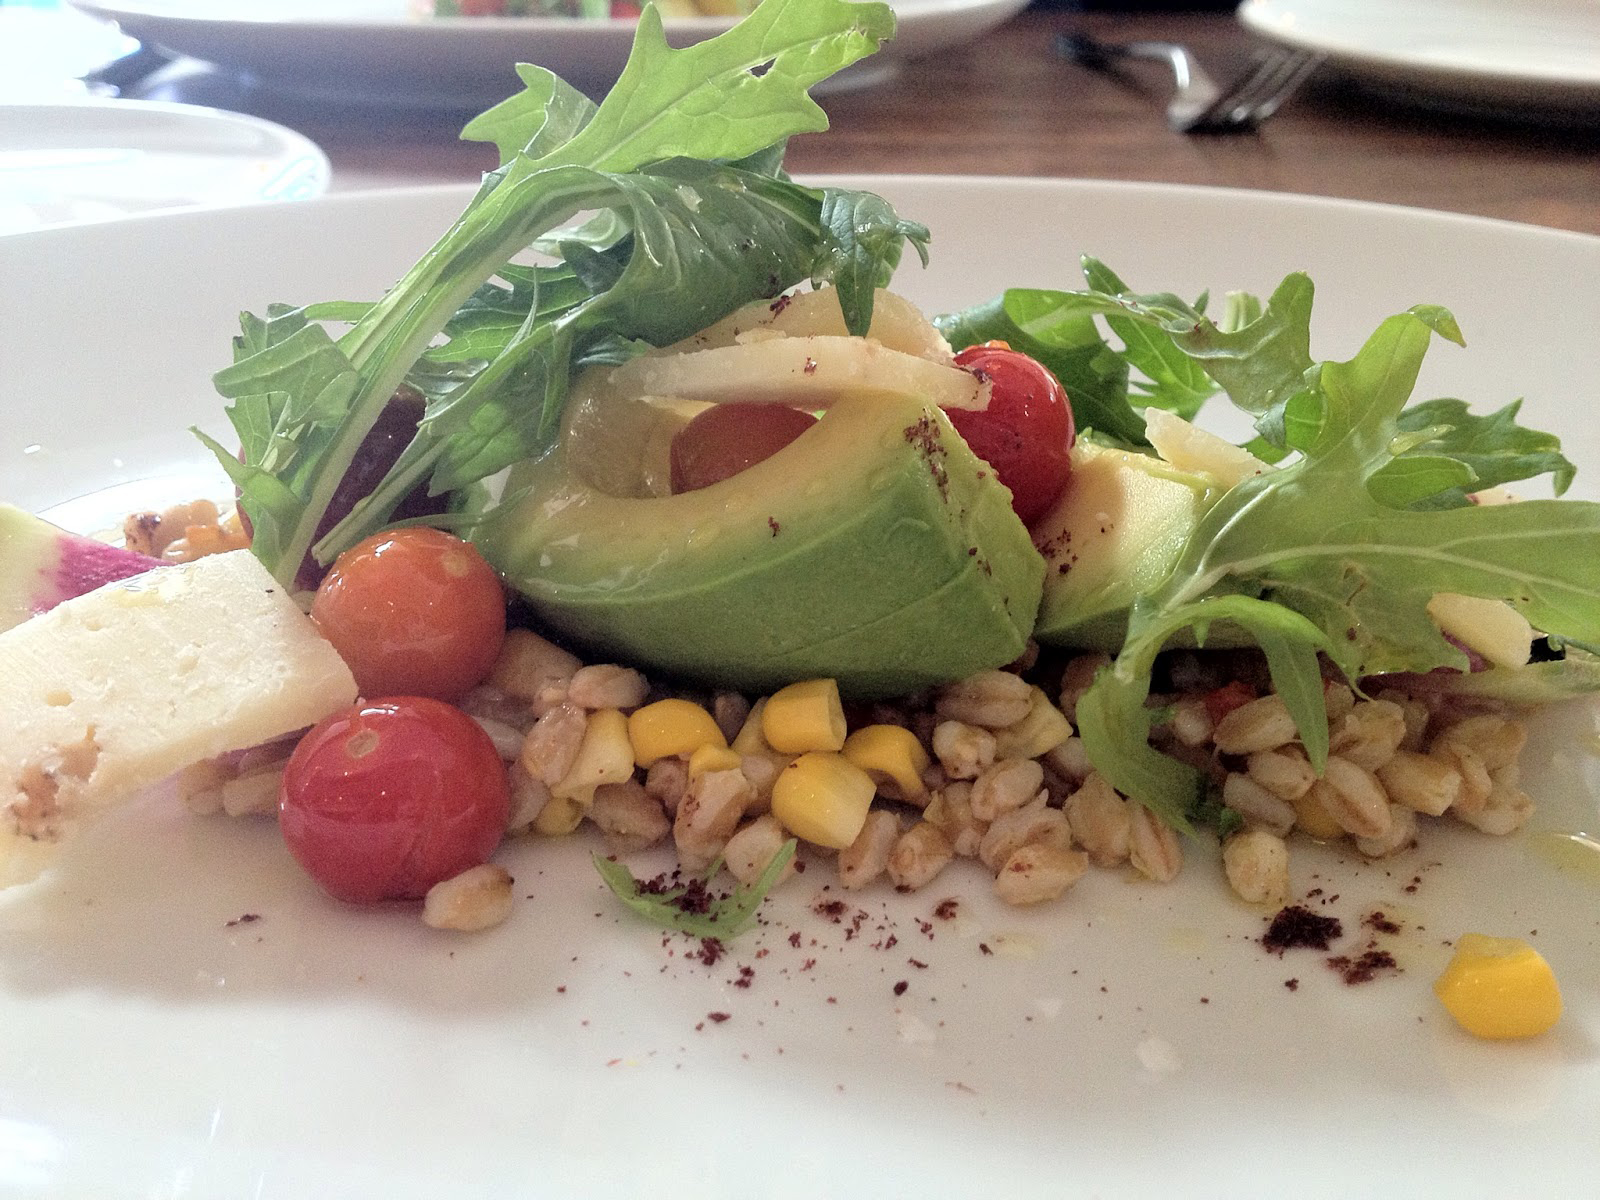 The corn and avocado salad at Farmshop in Brentwood offers an interesting twist on the standard salad. (Photo courtesy Google Images.)